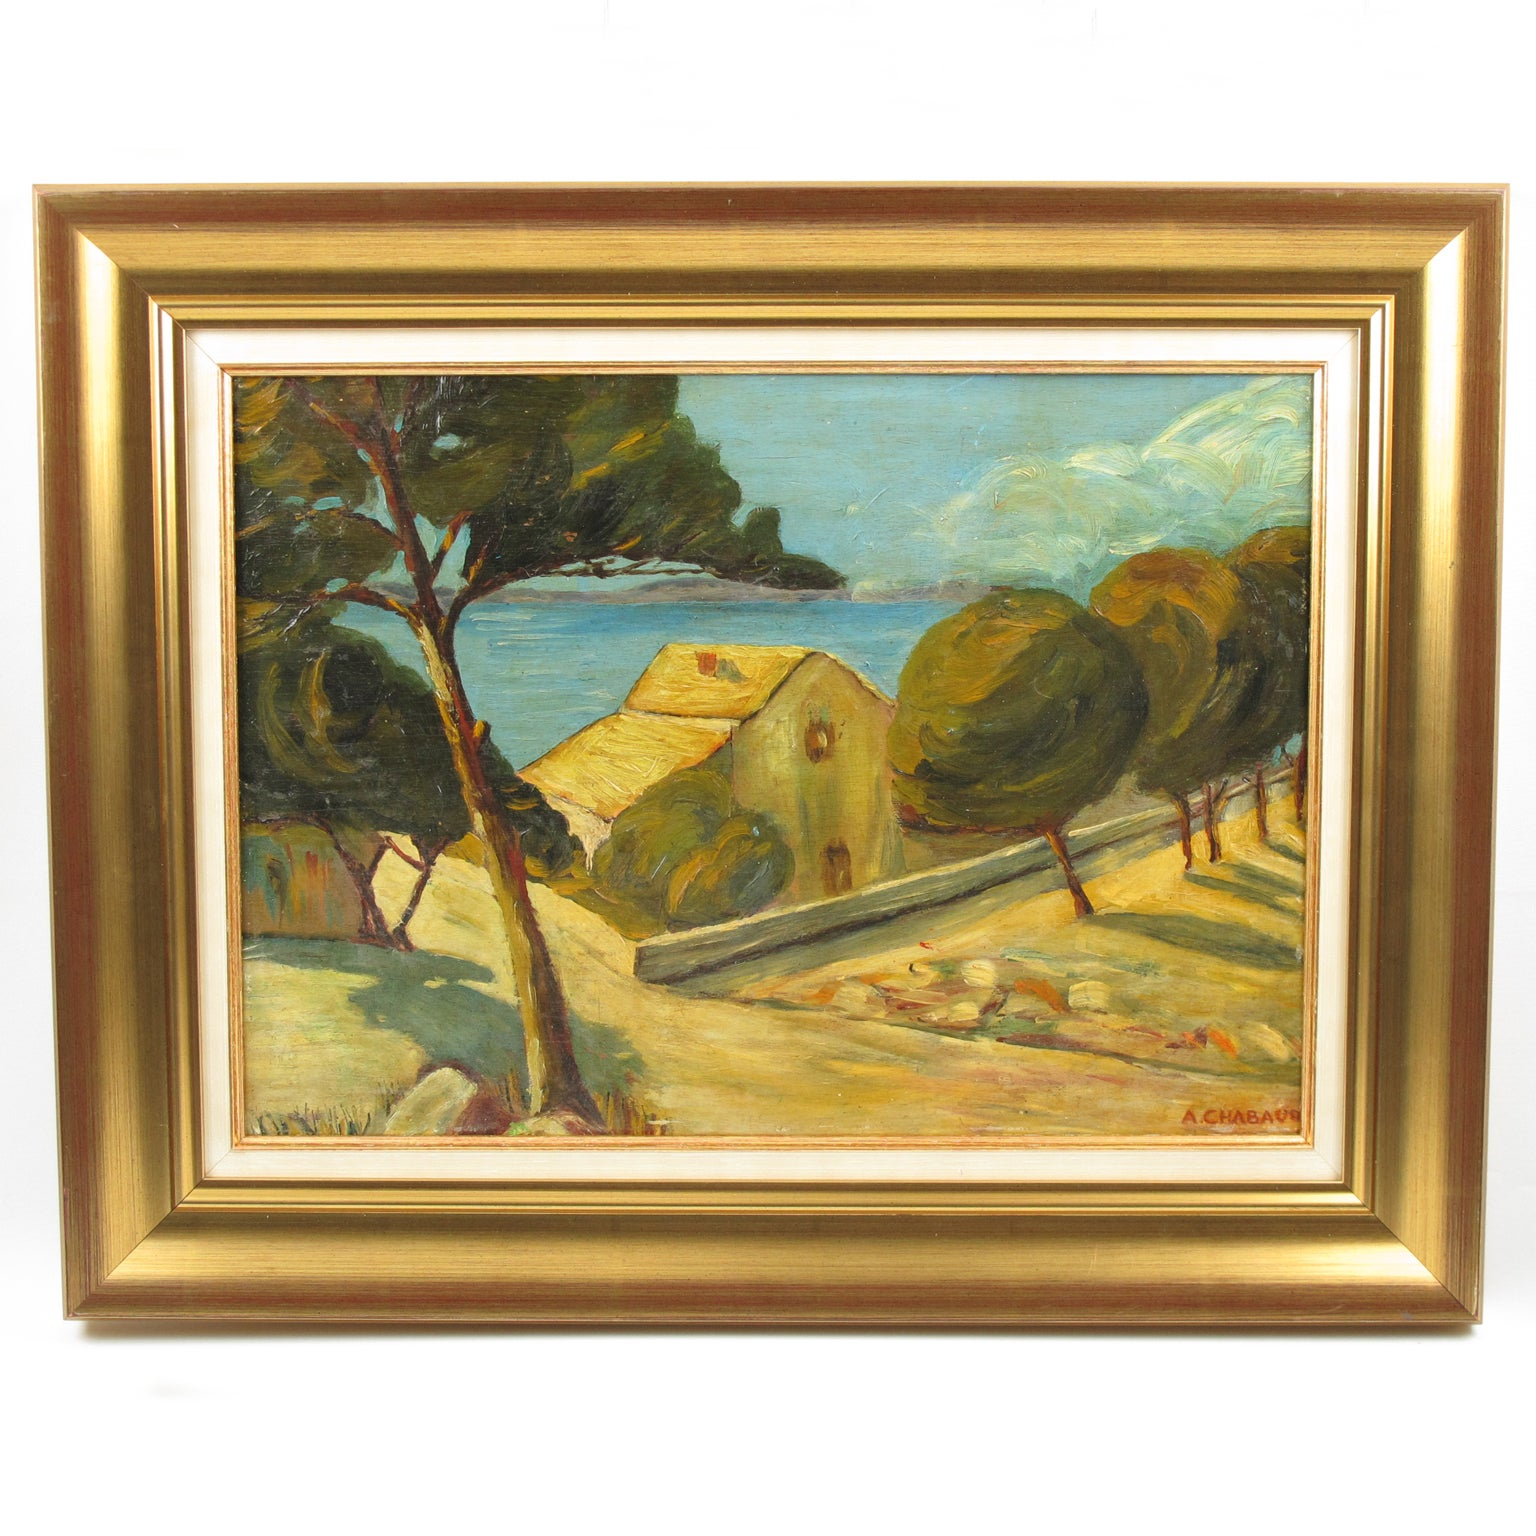 Mediterrane Küche An Bord Auguste Chabaud Oil On Board Painting French Mediterranean Seascape